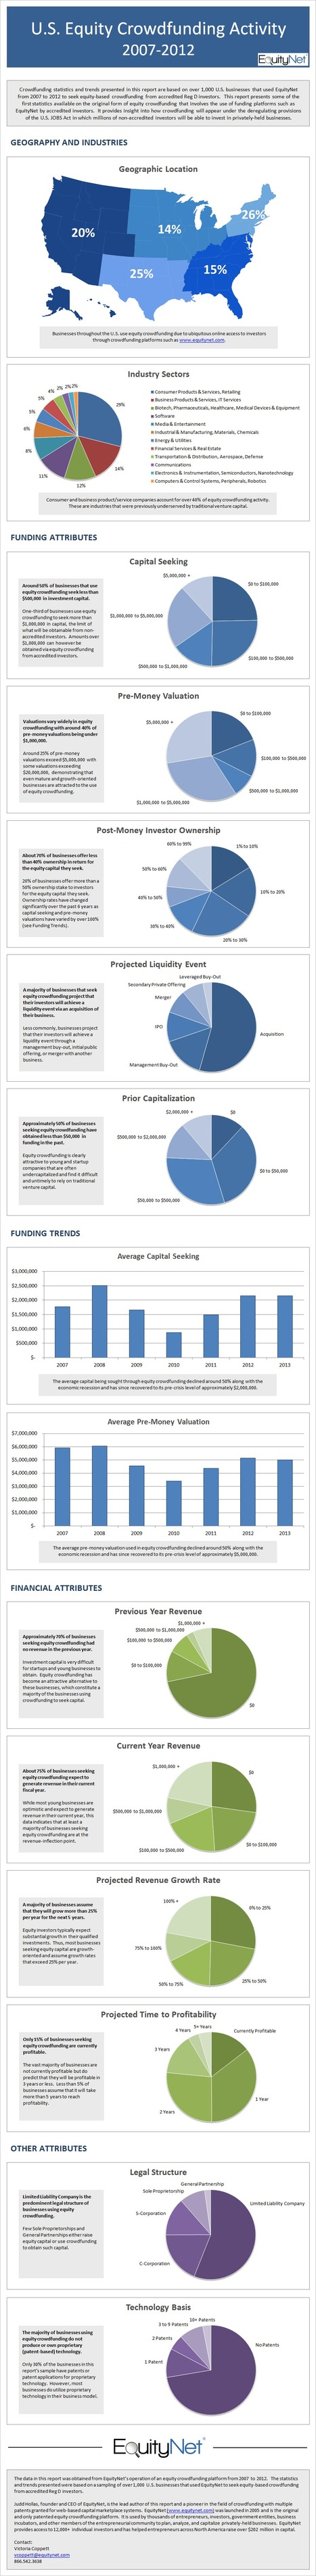 U.S. Equity Crowdfunding Activity Infographic | EquityNet Blog | Crowdfunding World | Scoop.it